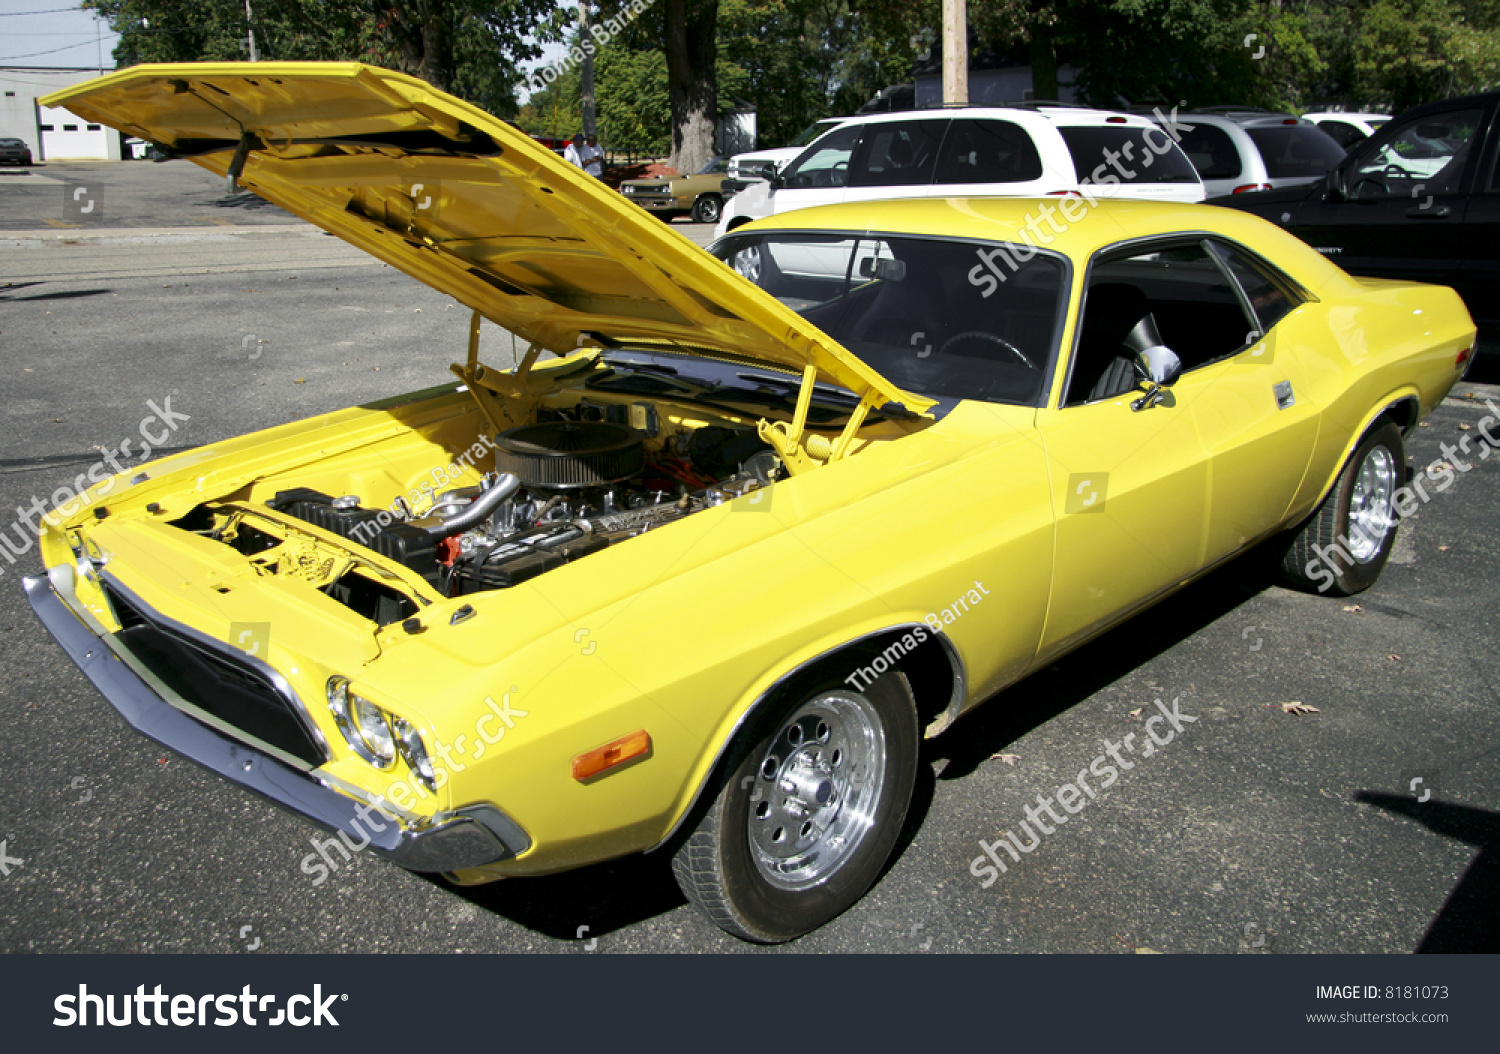 Beautifully Restored Old Cars On Display Stock Photo 8181073 ...